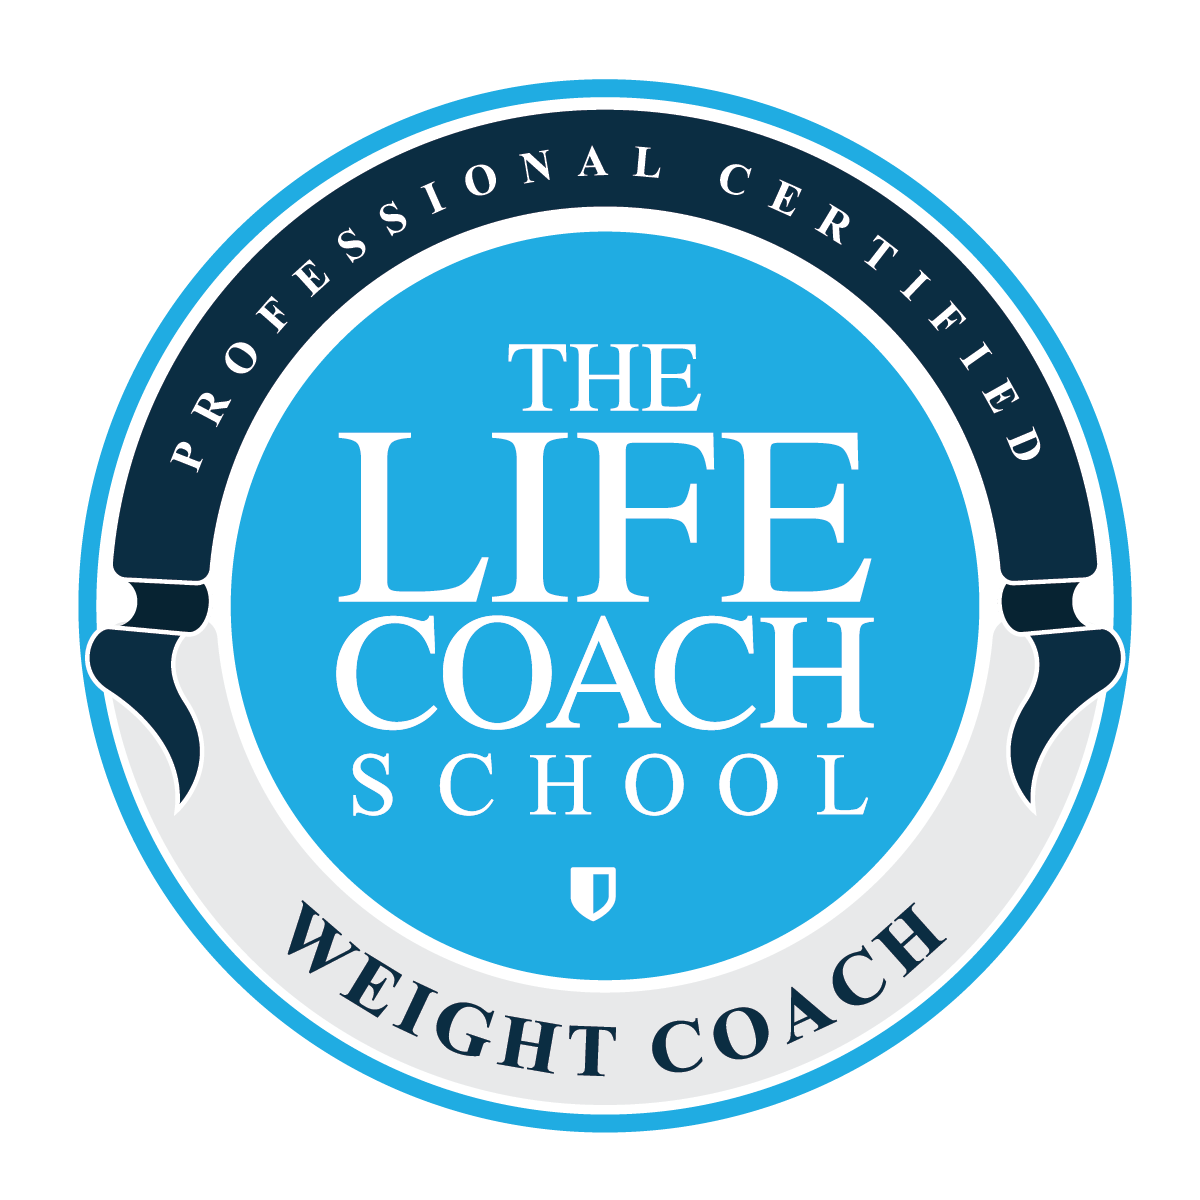 Professional Certified Weight Coach badge